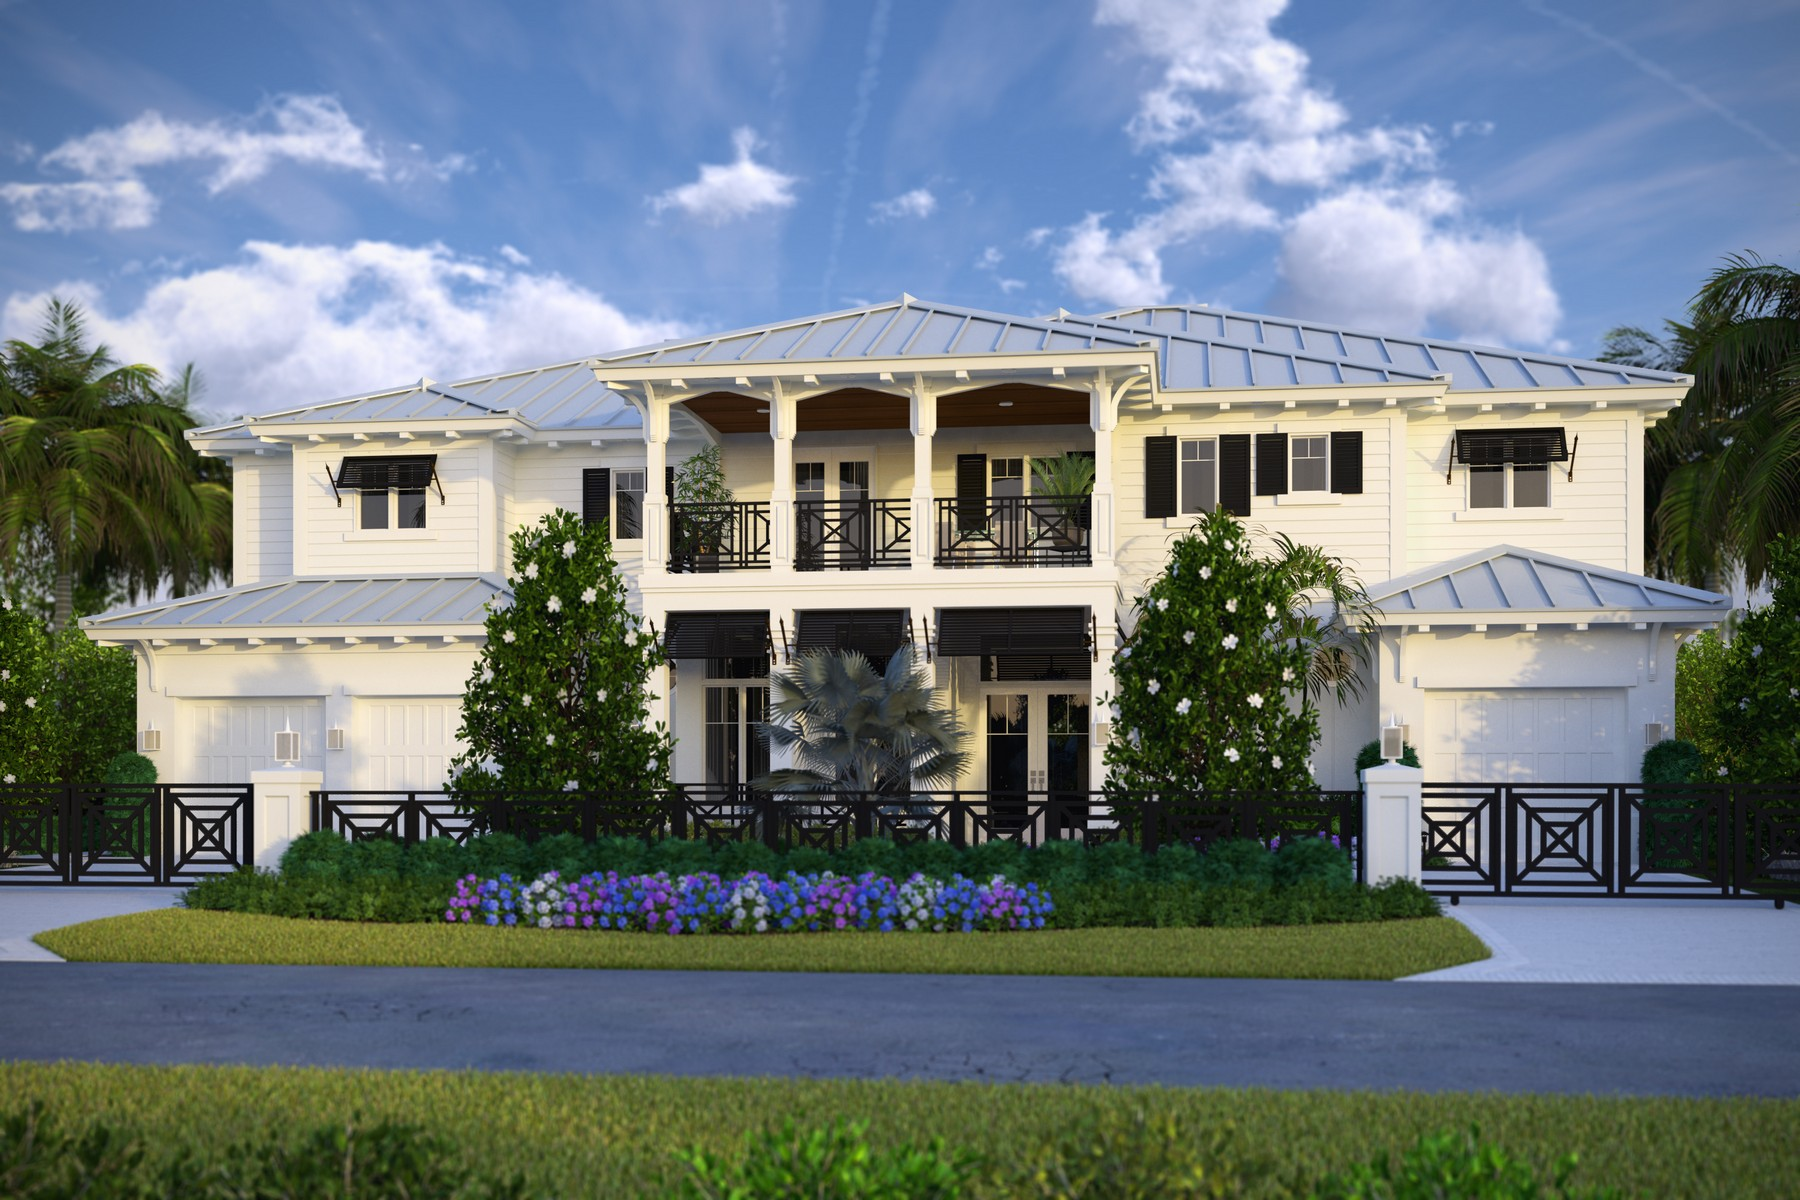 Single Family Home for Sale at 3532 NE 31st Ave , Lighthouse Point, FL 33064 Lighthouse Point, Florida, 33064 United States